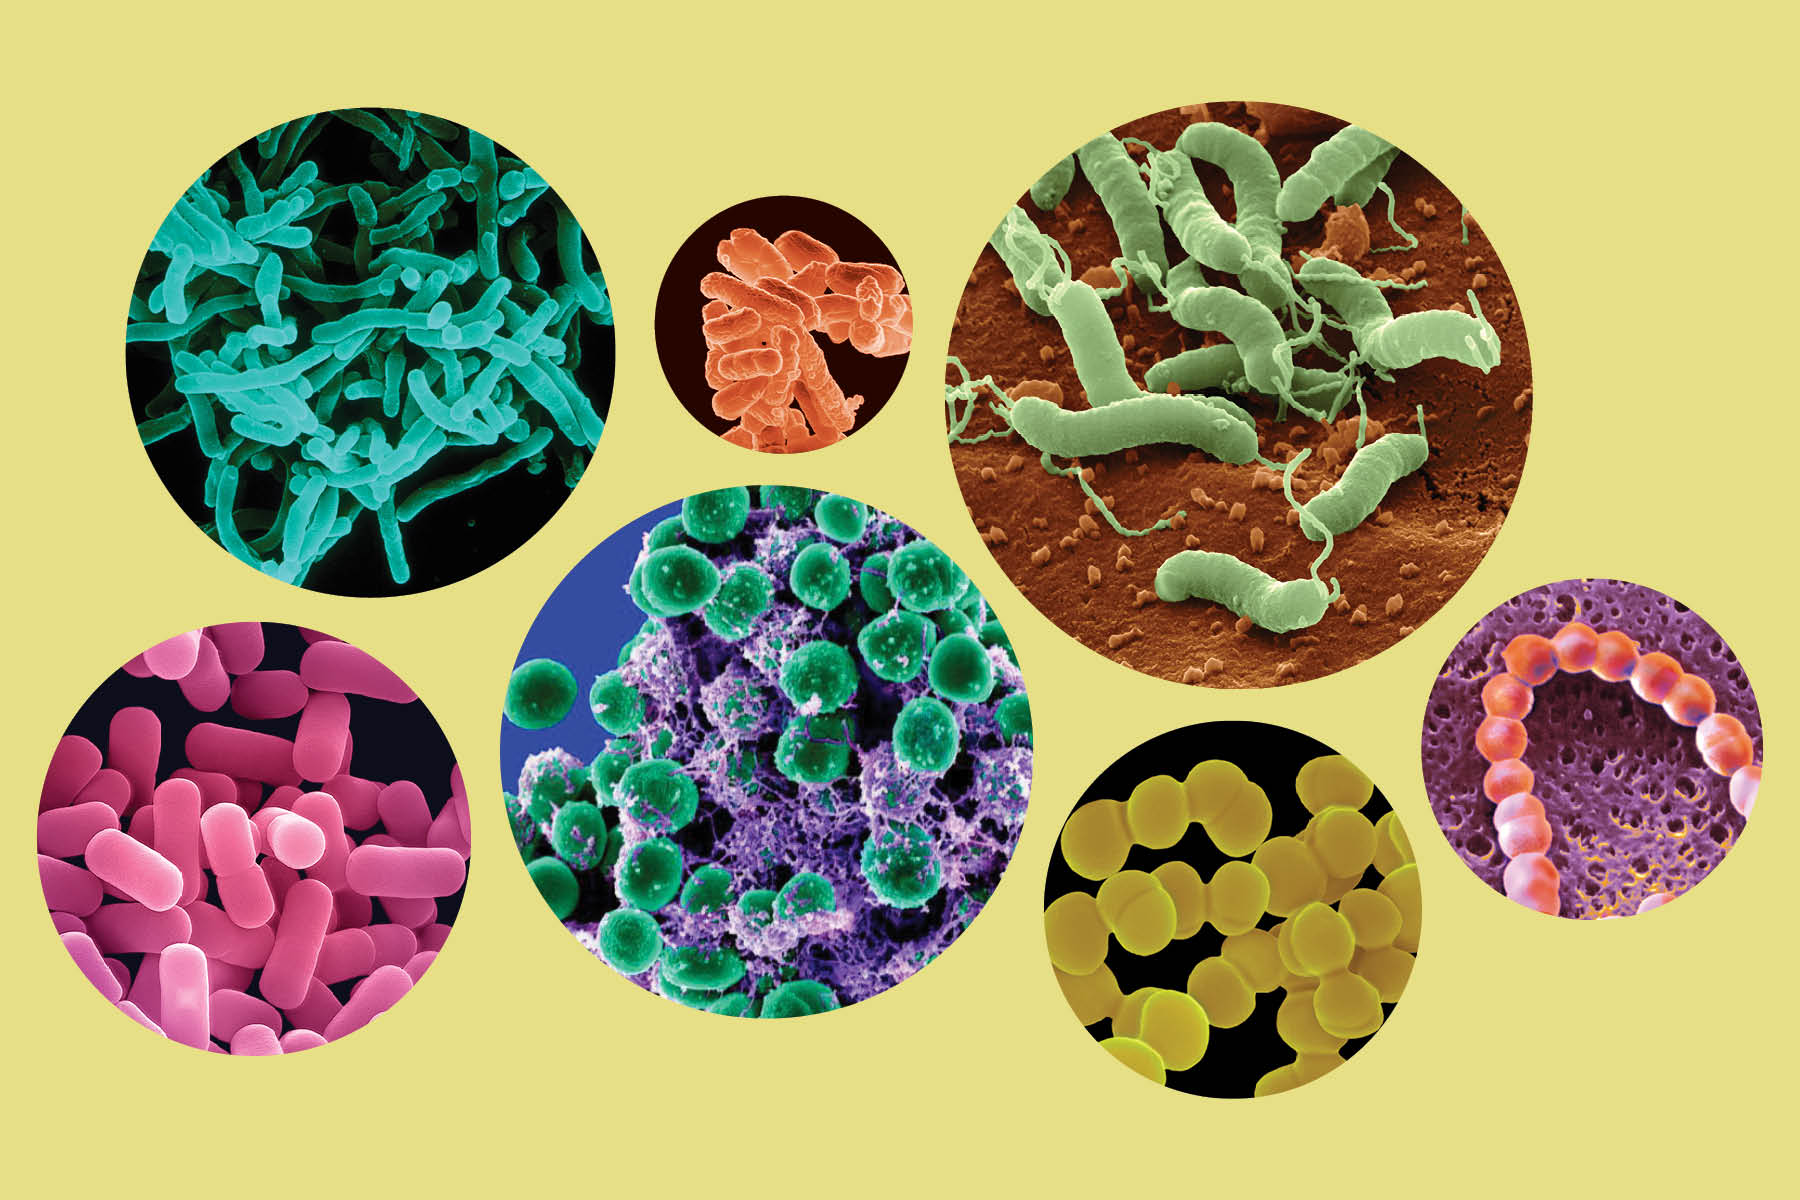 7 circles containing various examples of true bacteria: some are round, some pill-shaped, some long, and some with tails.